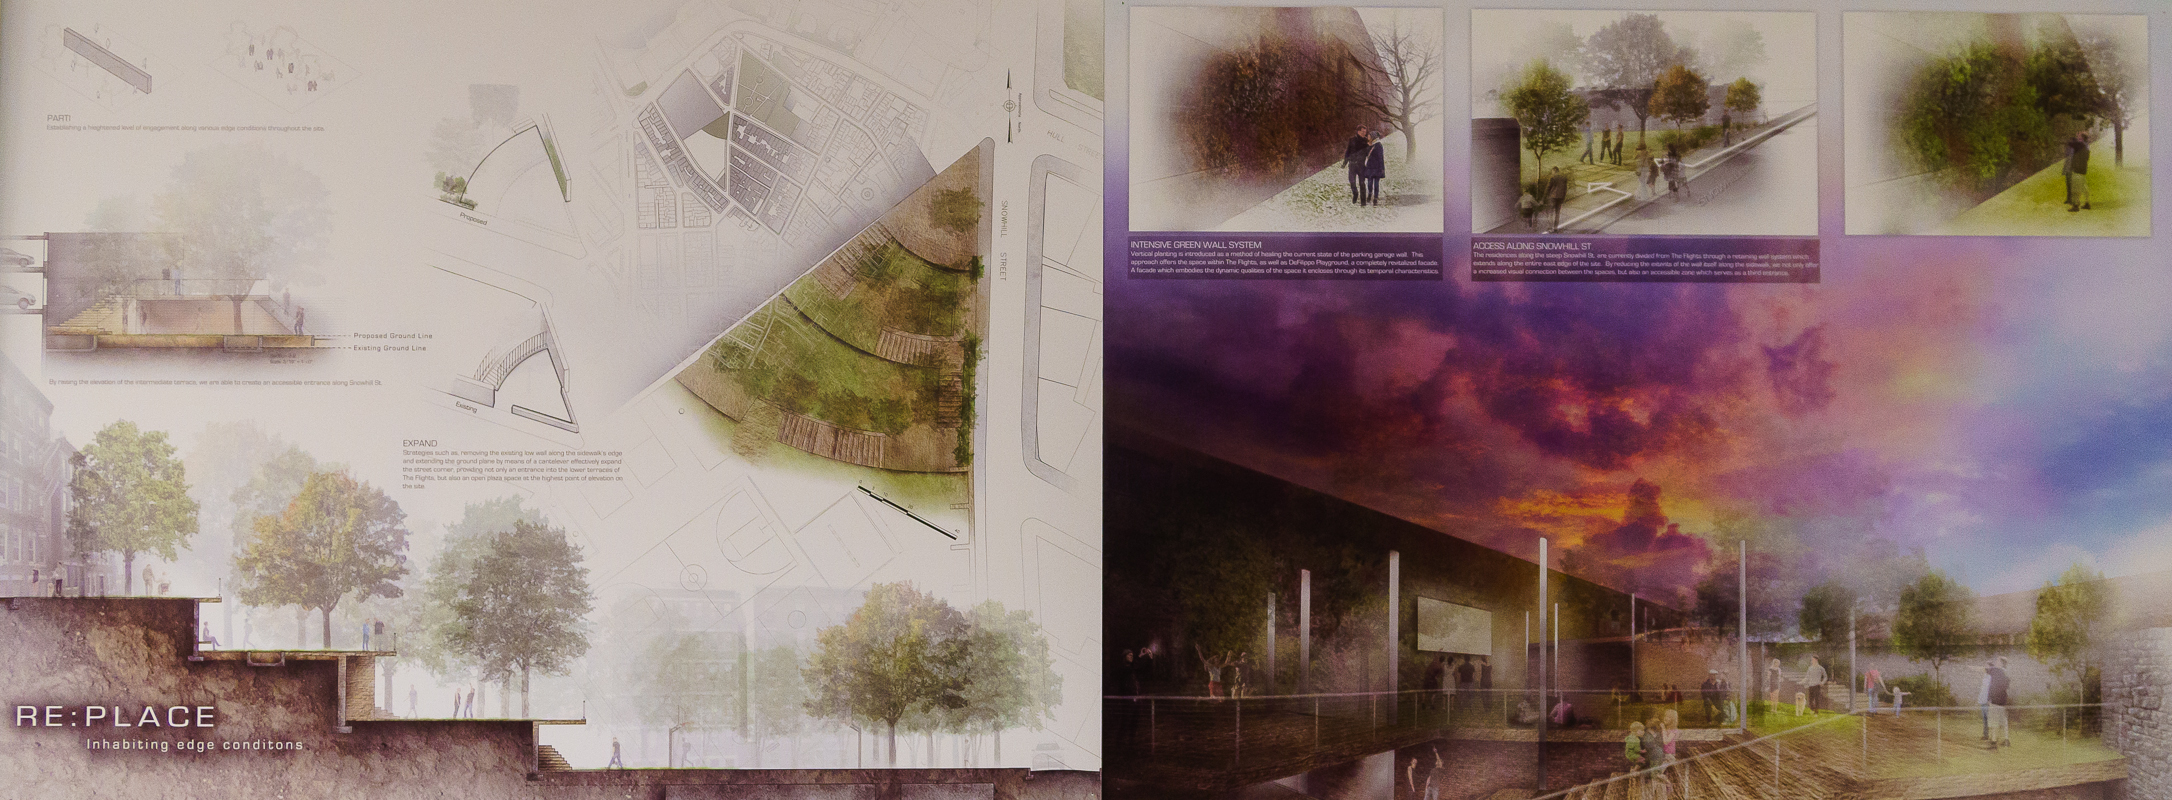 Place Inhabiting Edge Conditions by Kevin Fletcher + Phil Seclen (Professor's Choice Award)